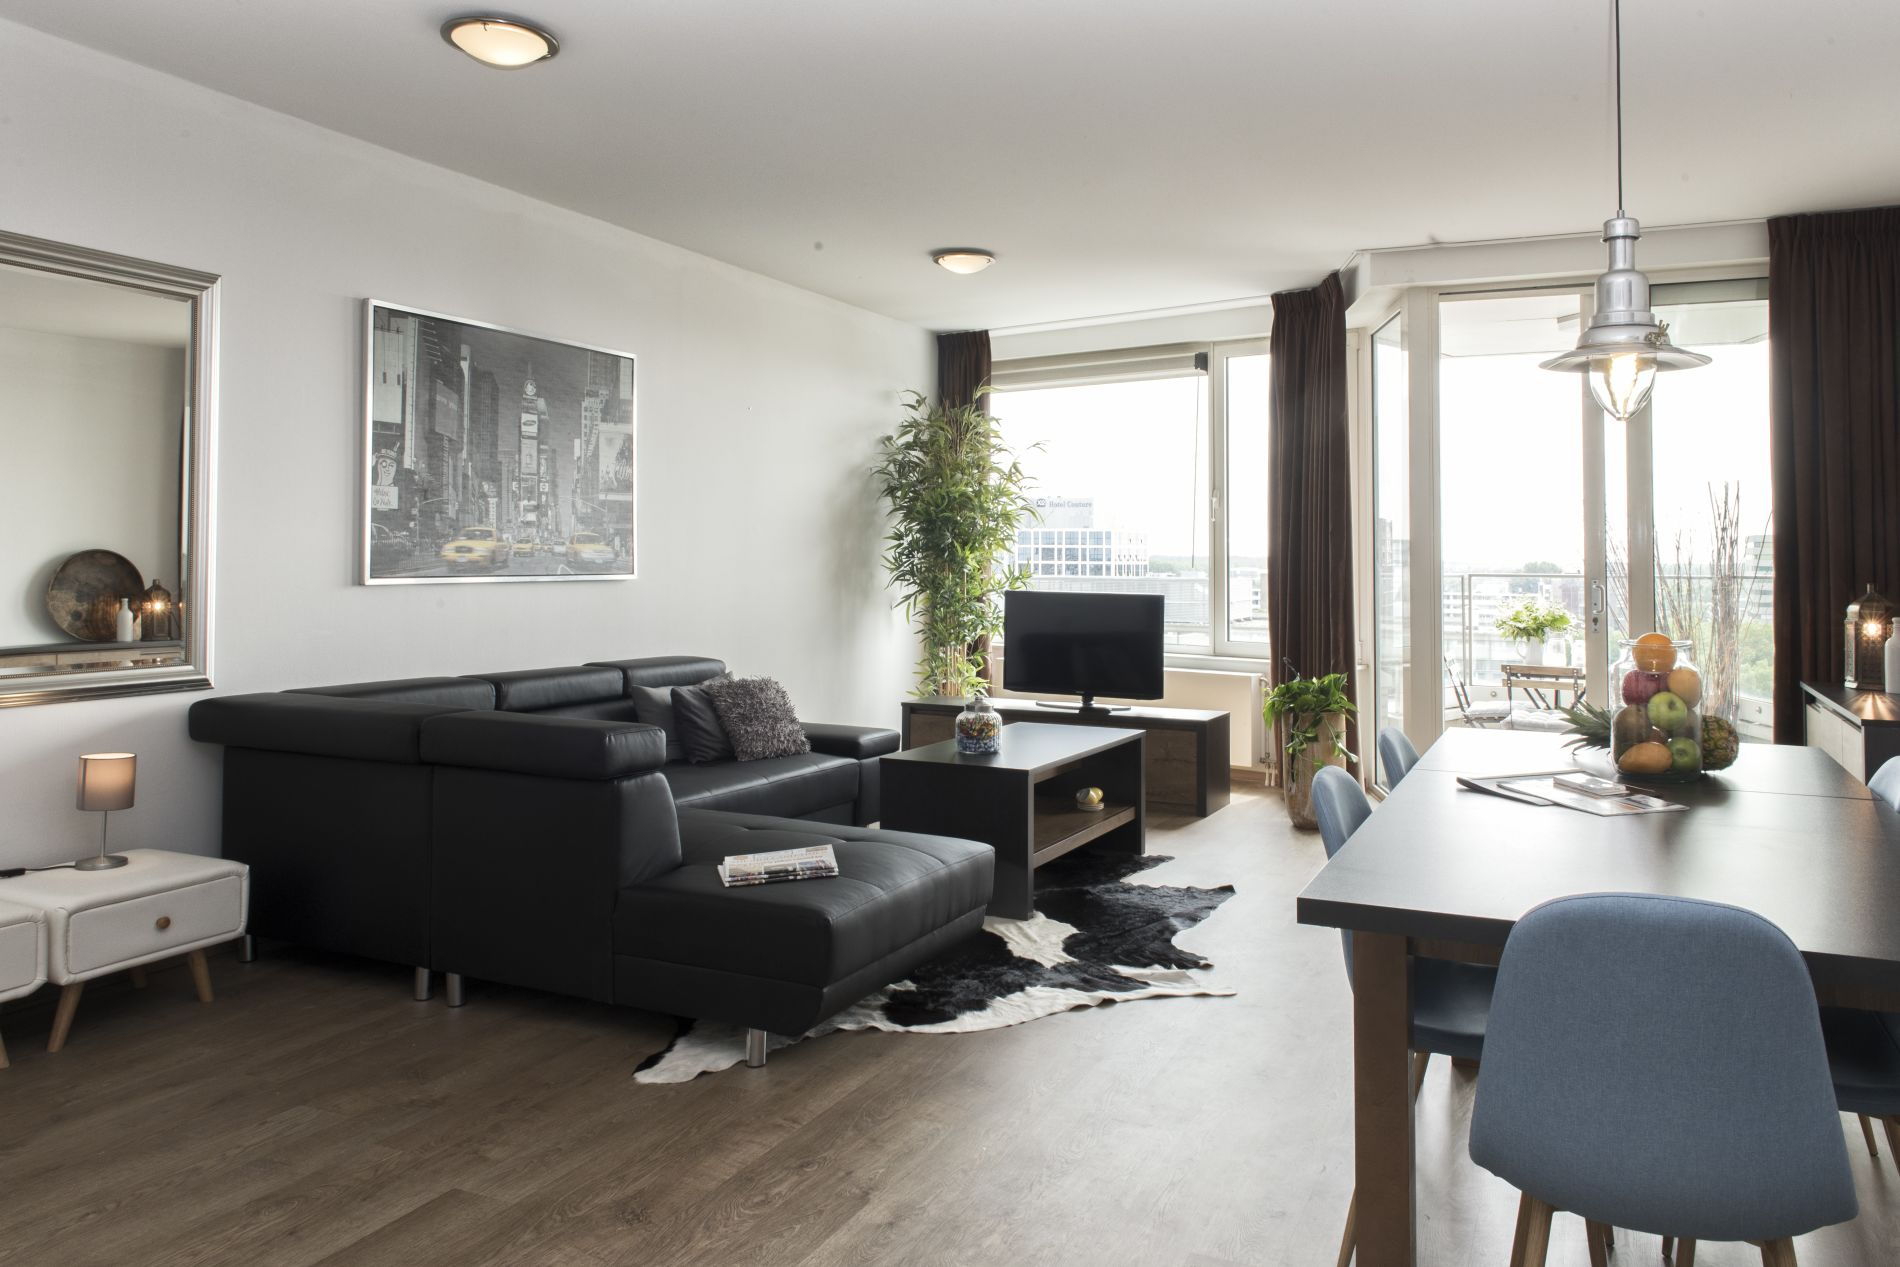 Serviced apartment that allows pets in Amsterdam